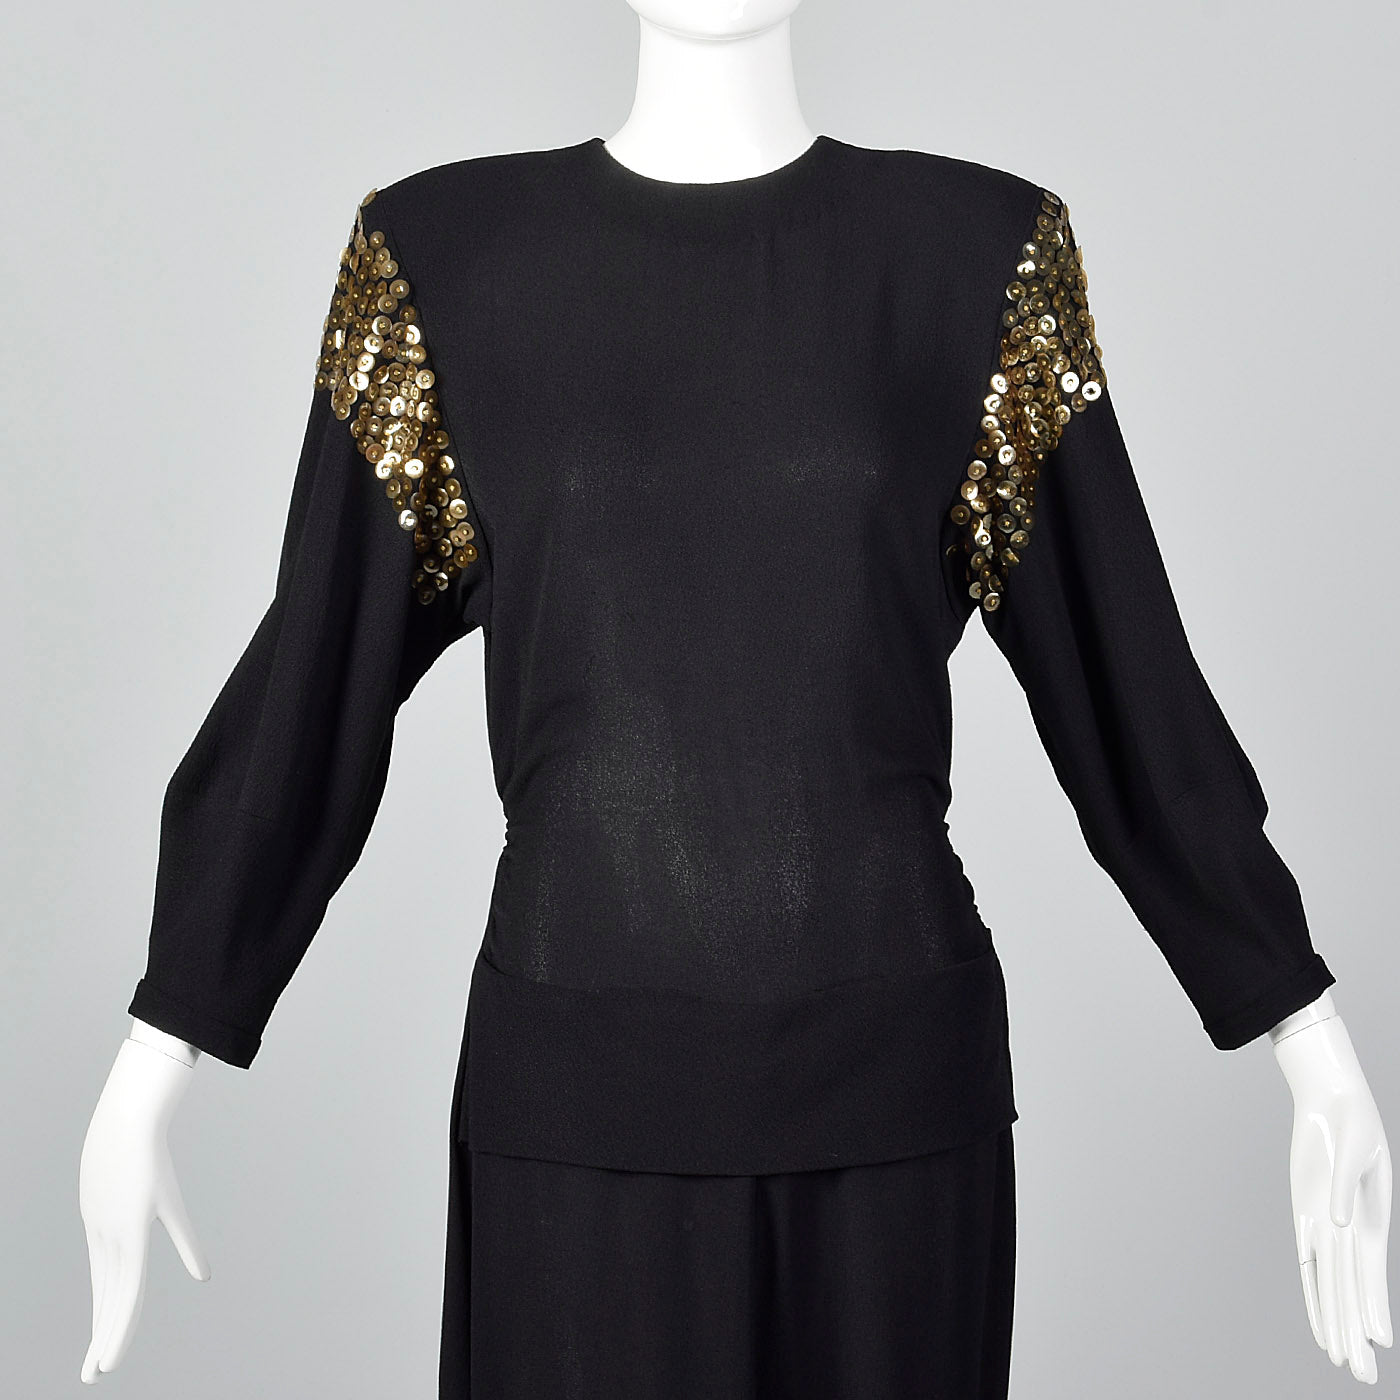 1940s Black Femme Fatale Dress with Gold Sequins